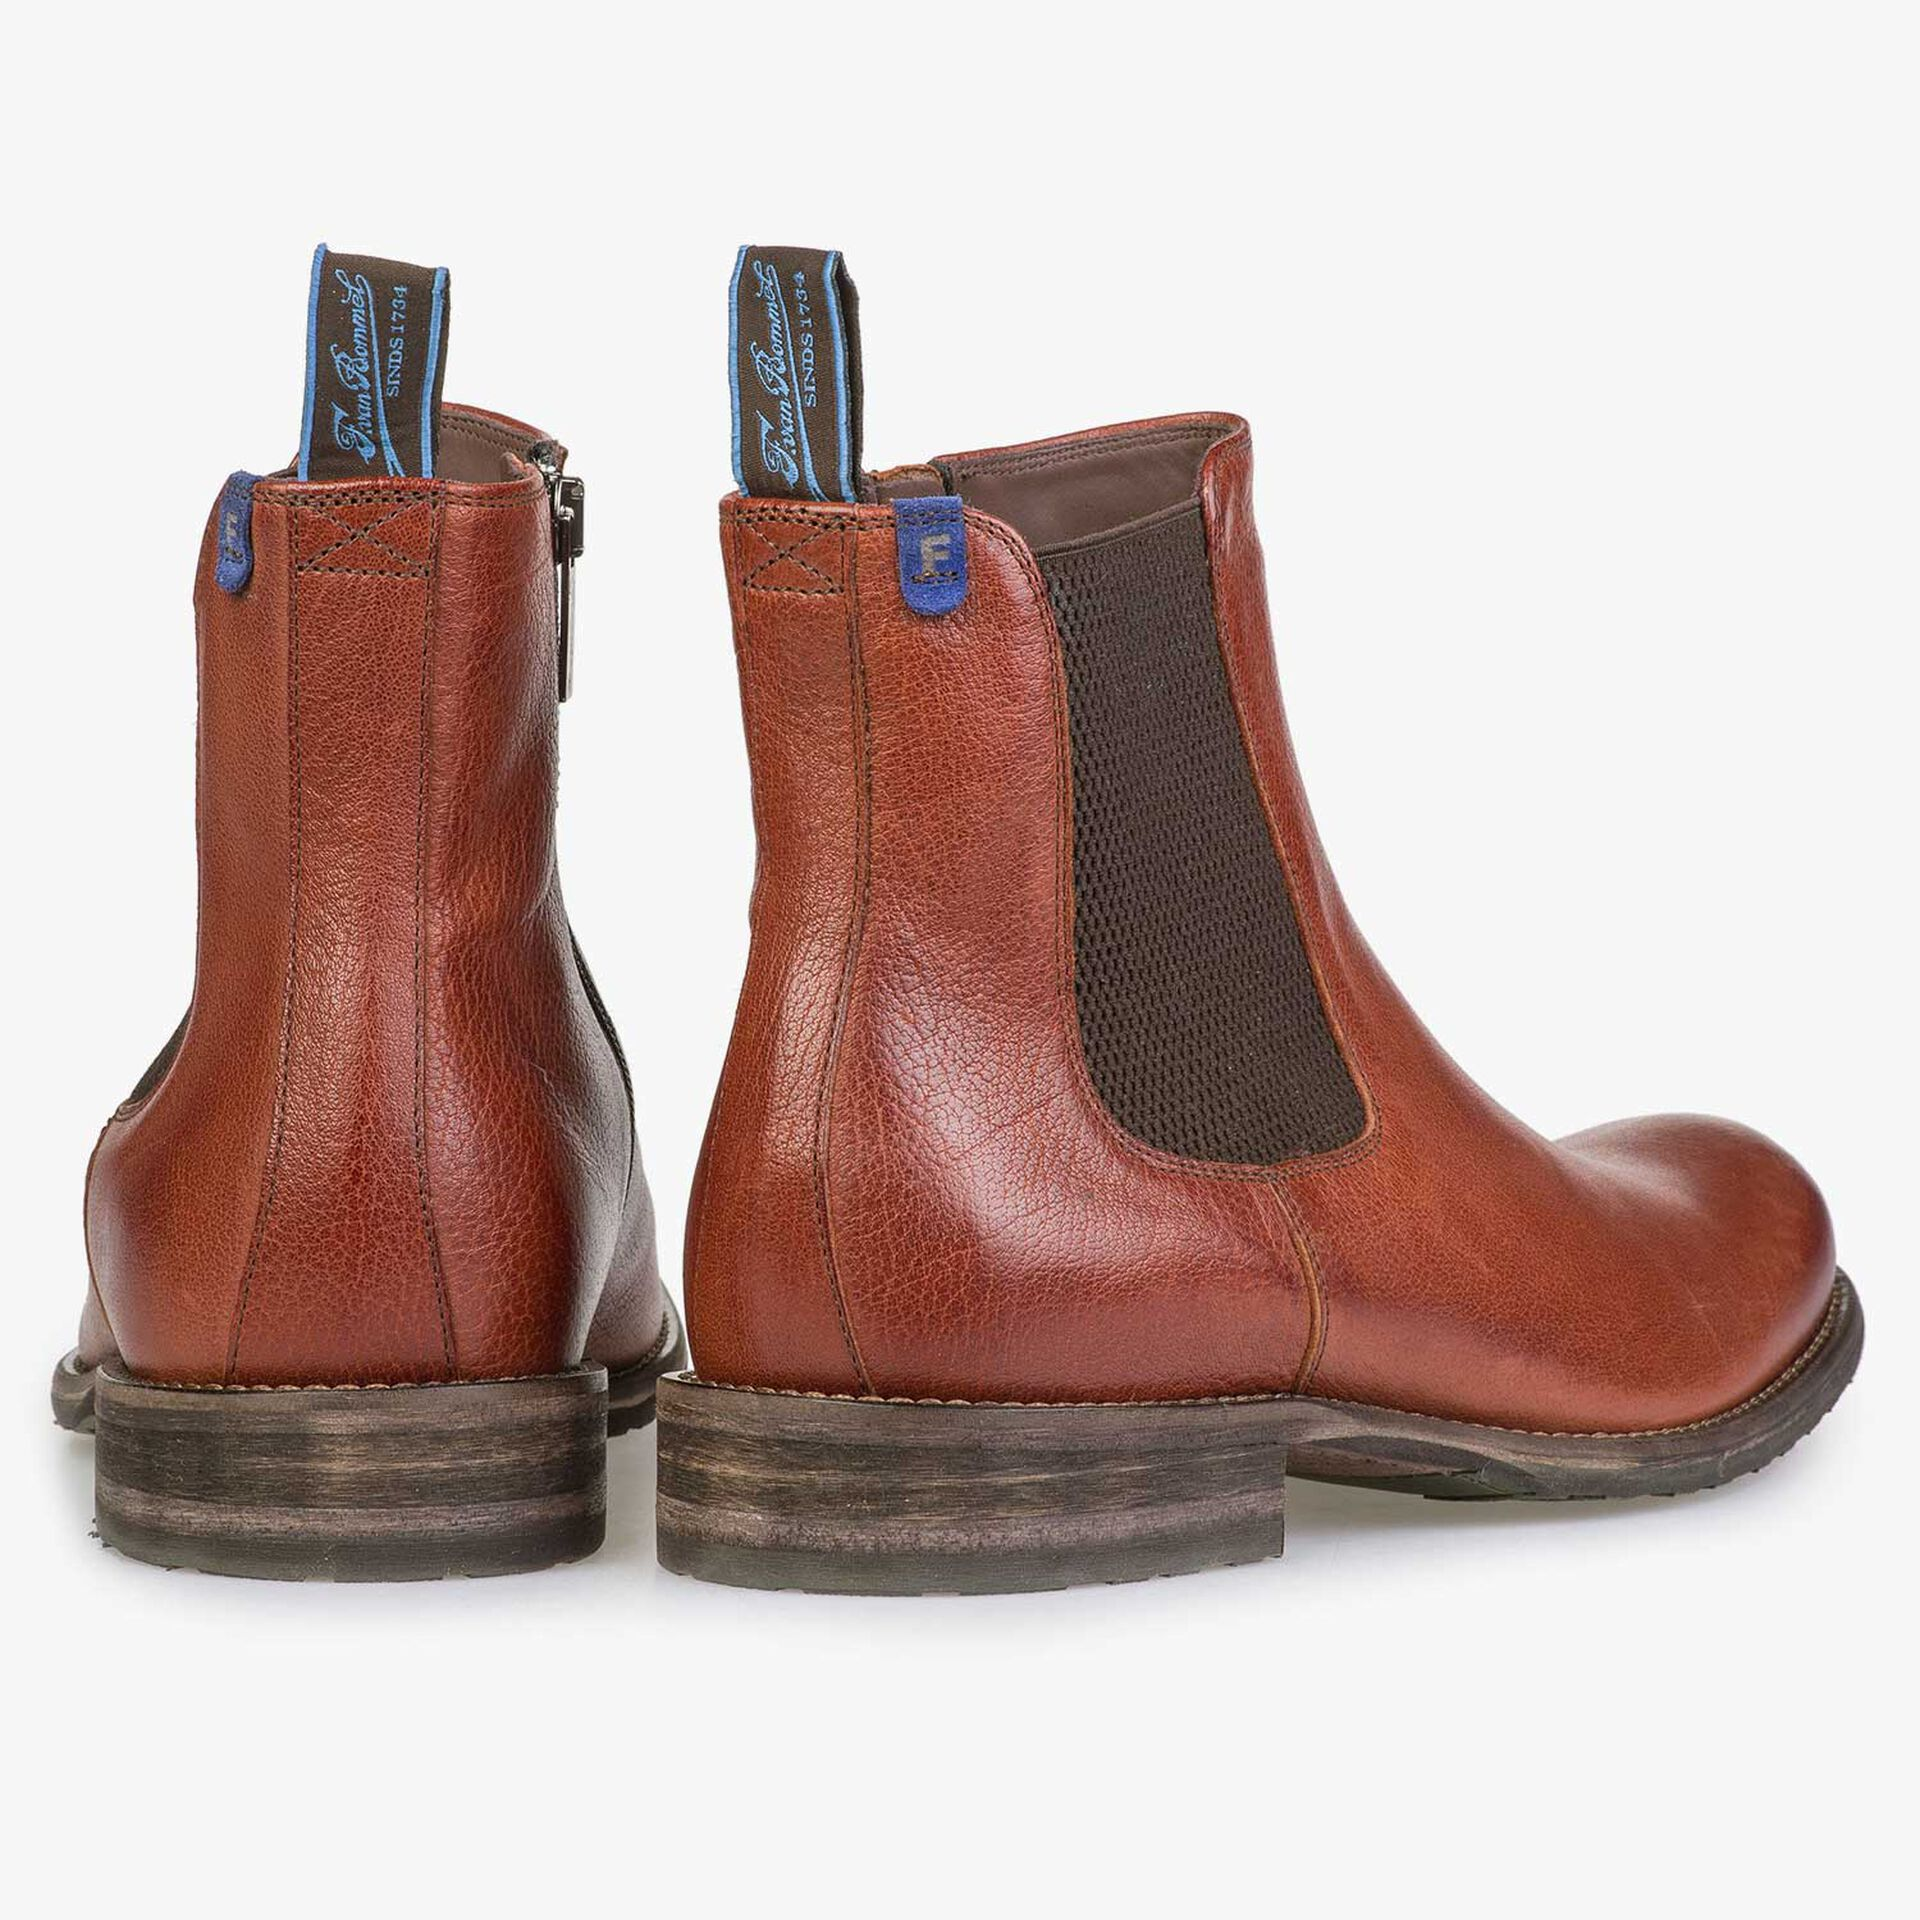 Wool lined cognac-coloured leather Chelsea boot